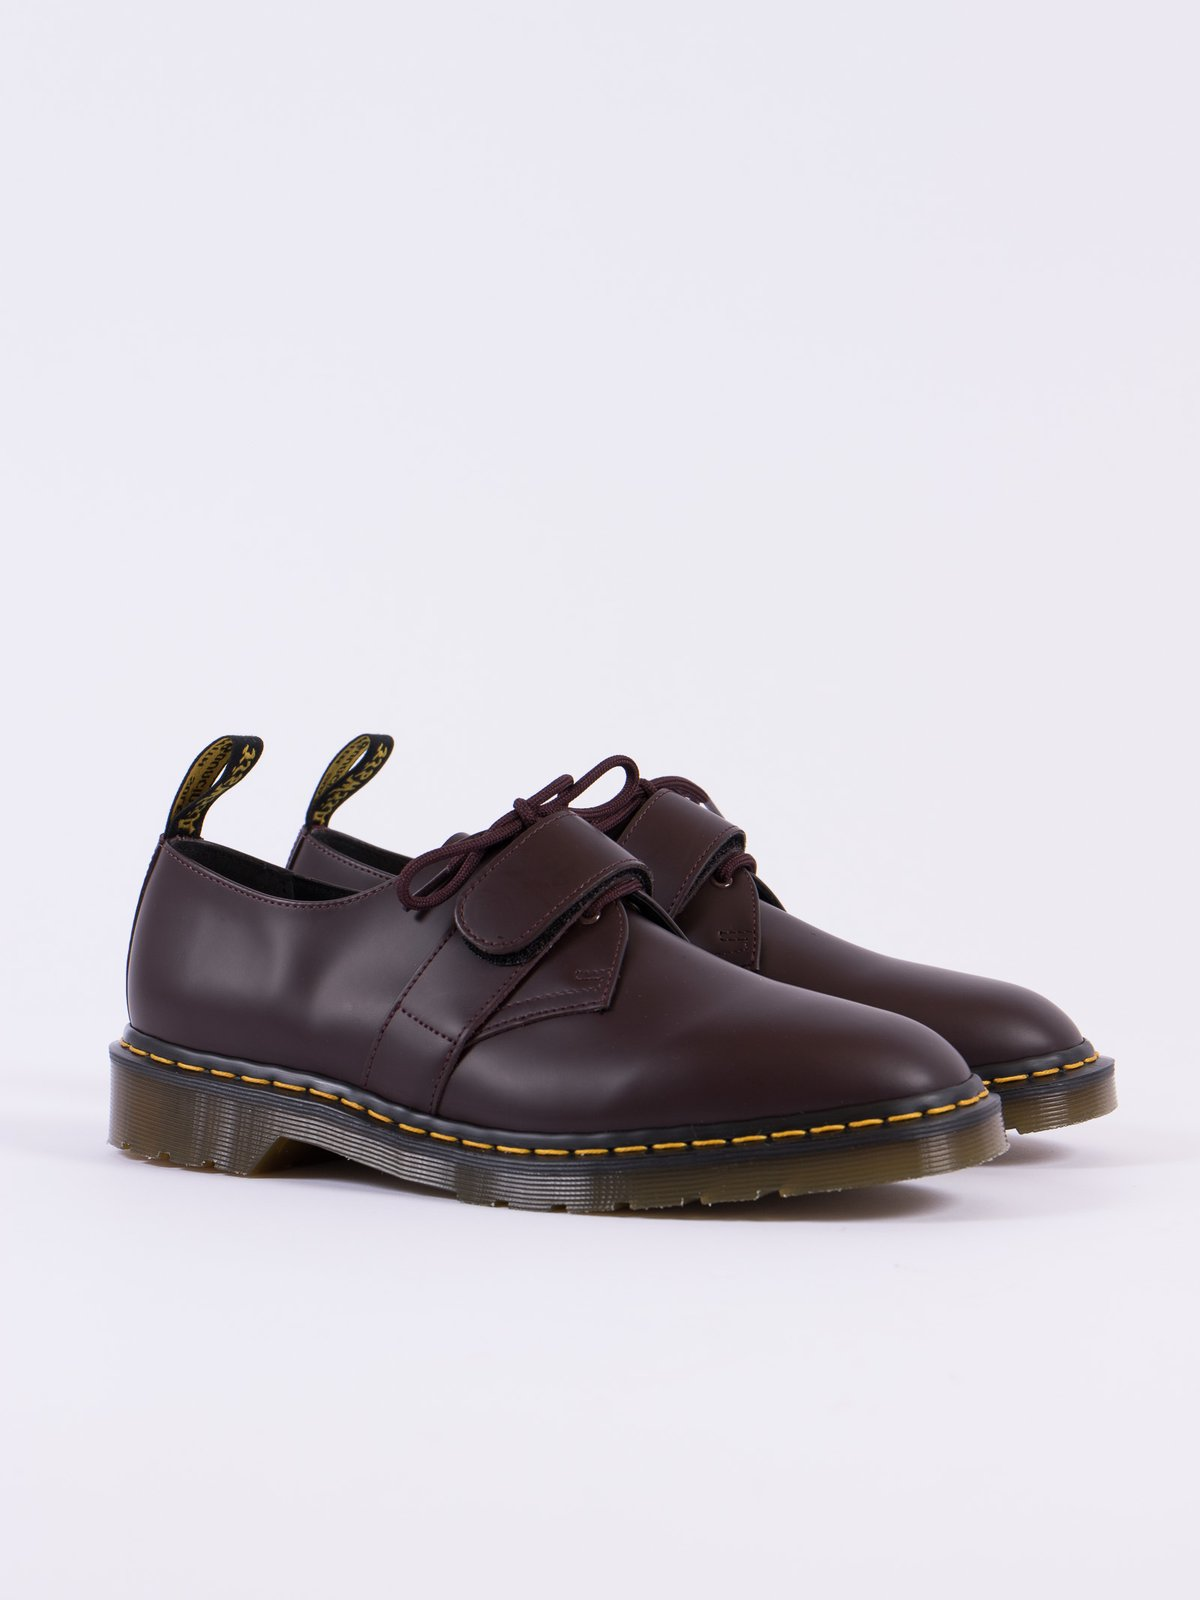 ... Oxblood Smooth Leather Velcro Shoe - Image 1 ...